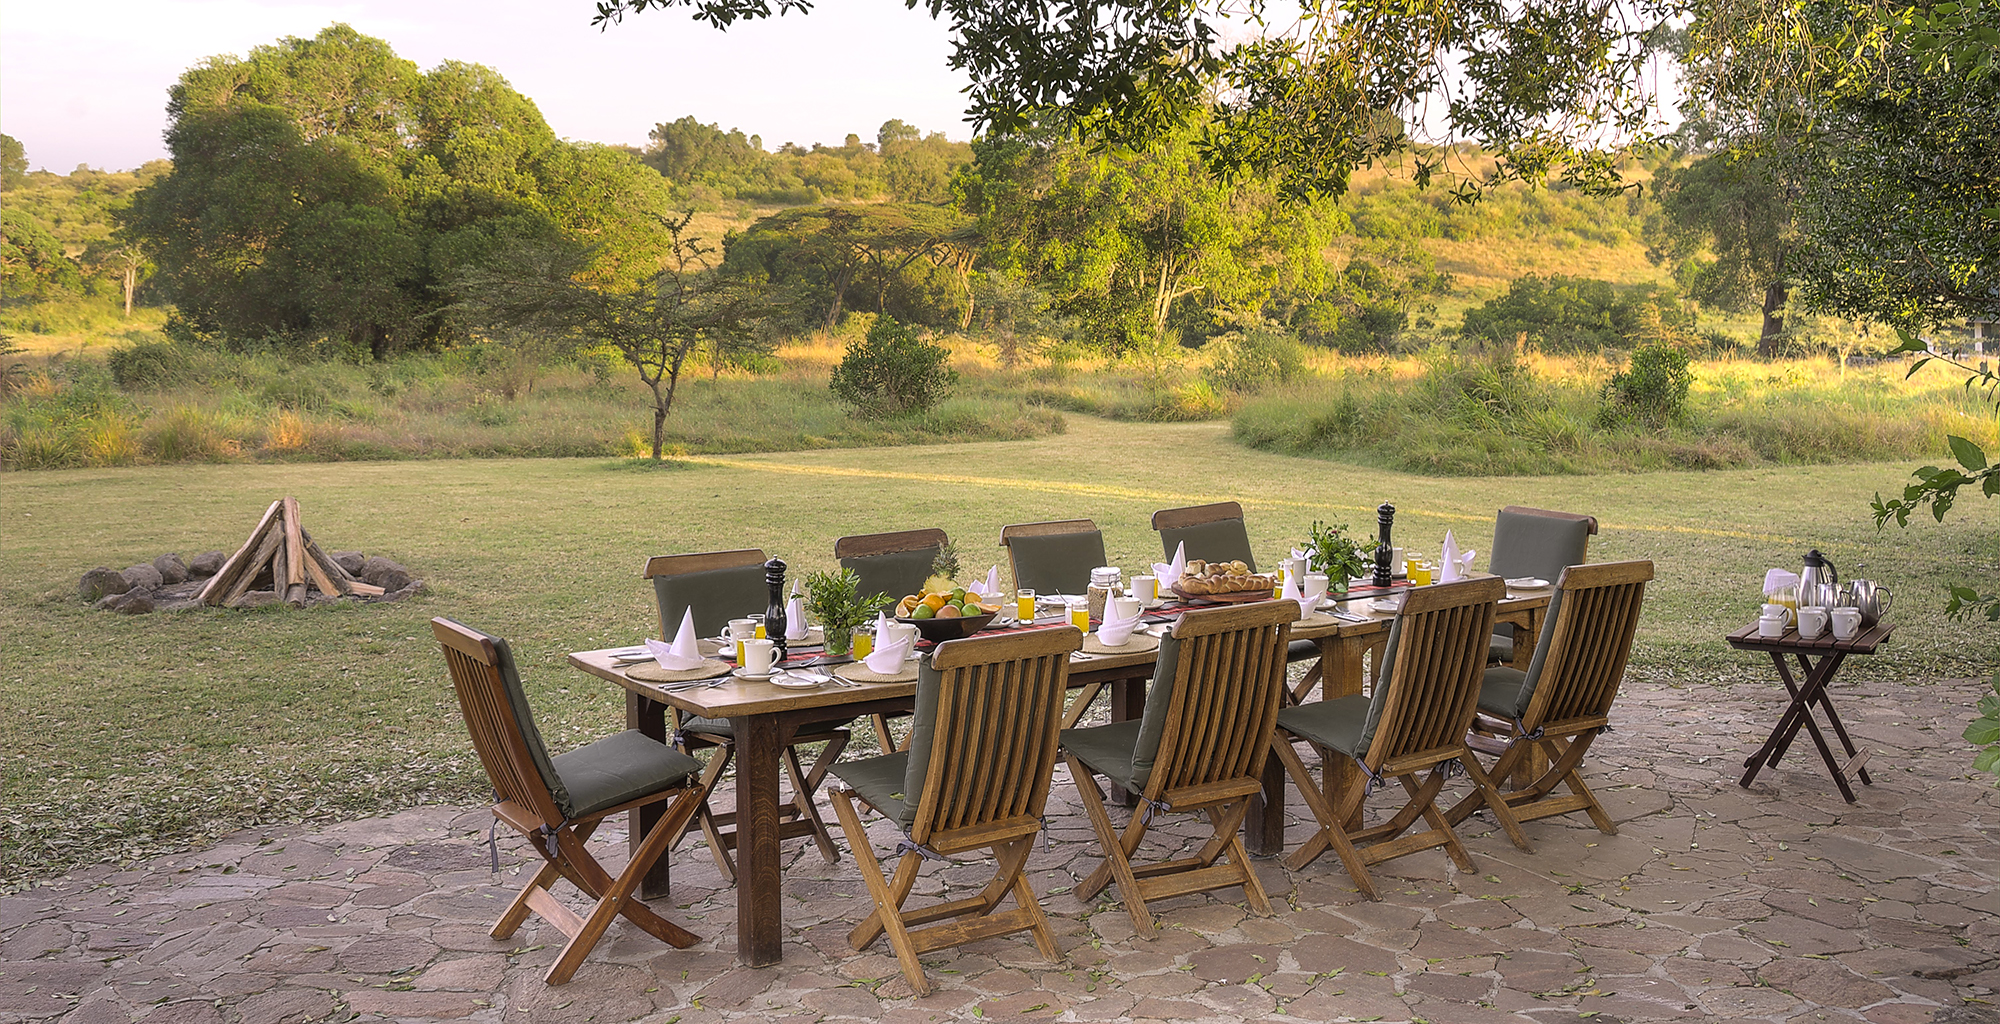 Kenya-Kicheche-Mara-Camp-Outdoor-Dining